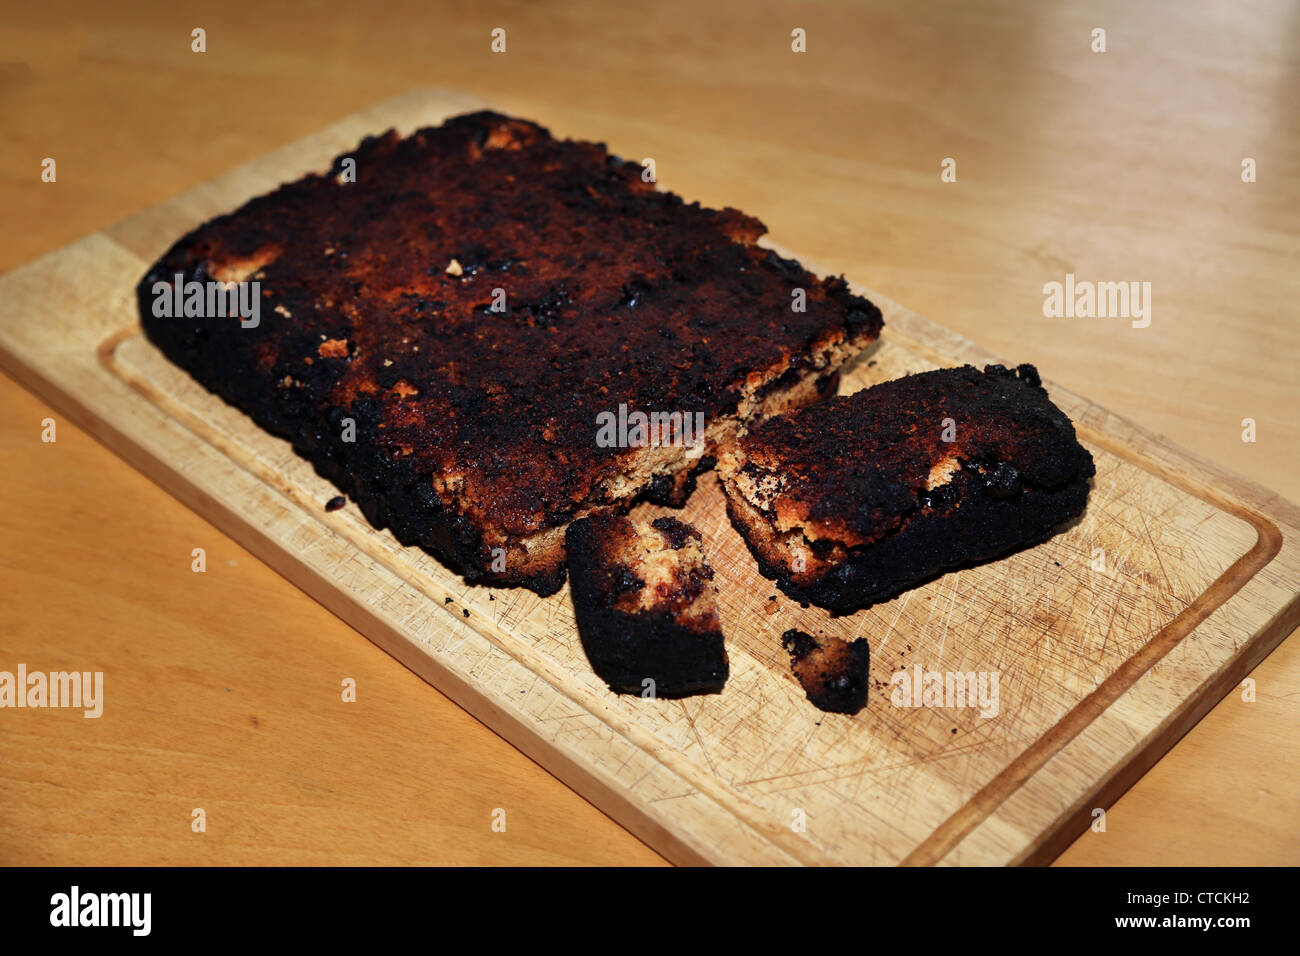 Burnt Cake With A Piece Cut Off On Chopping Board - Stock Image